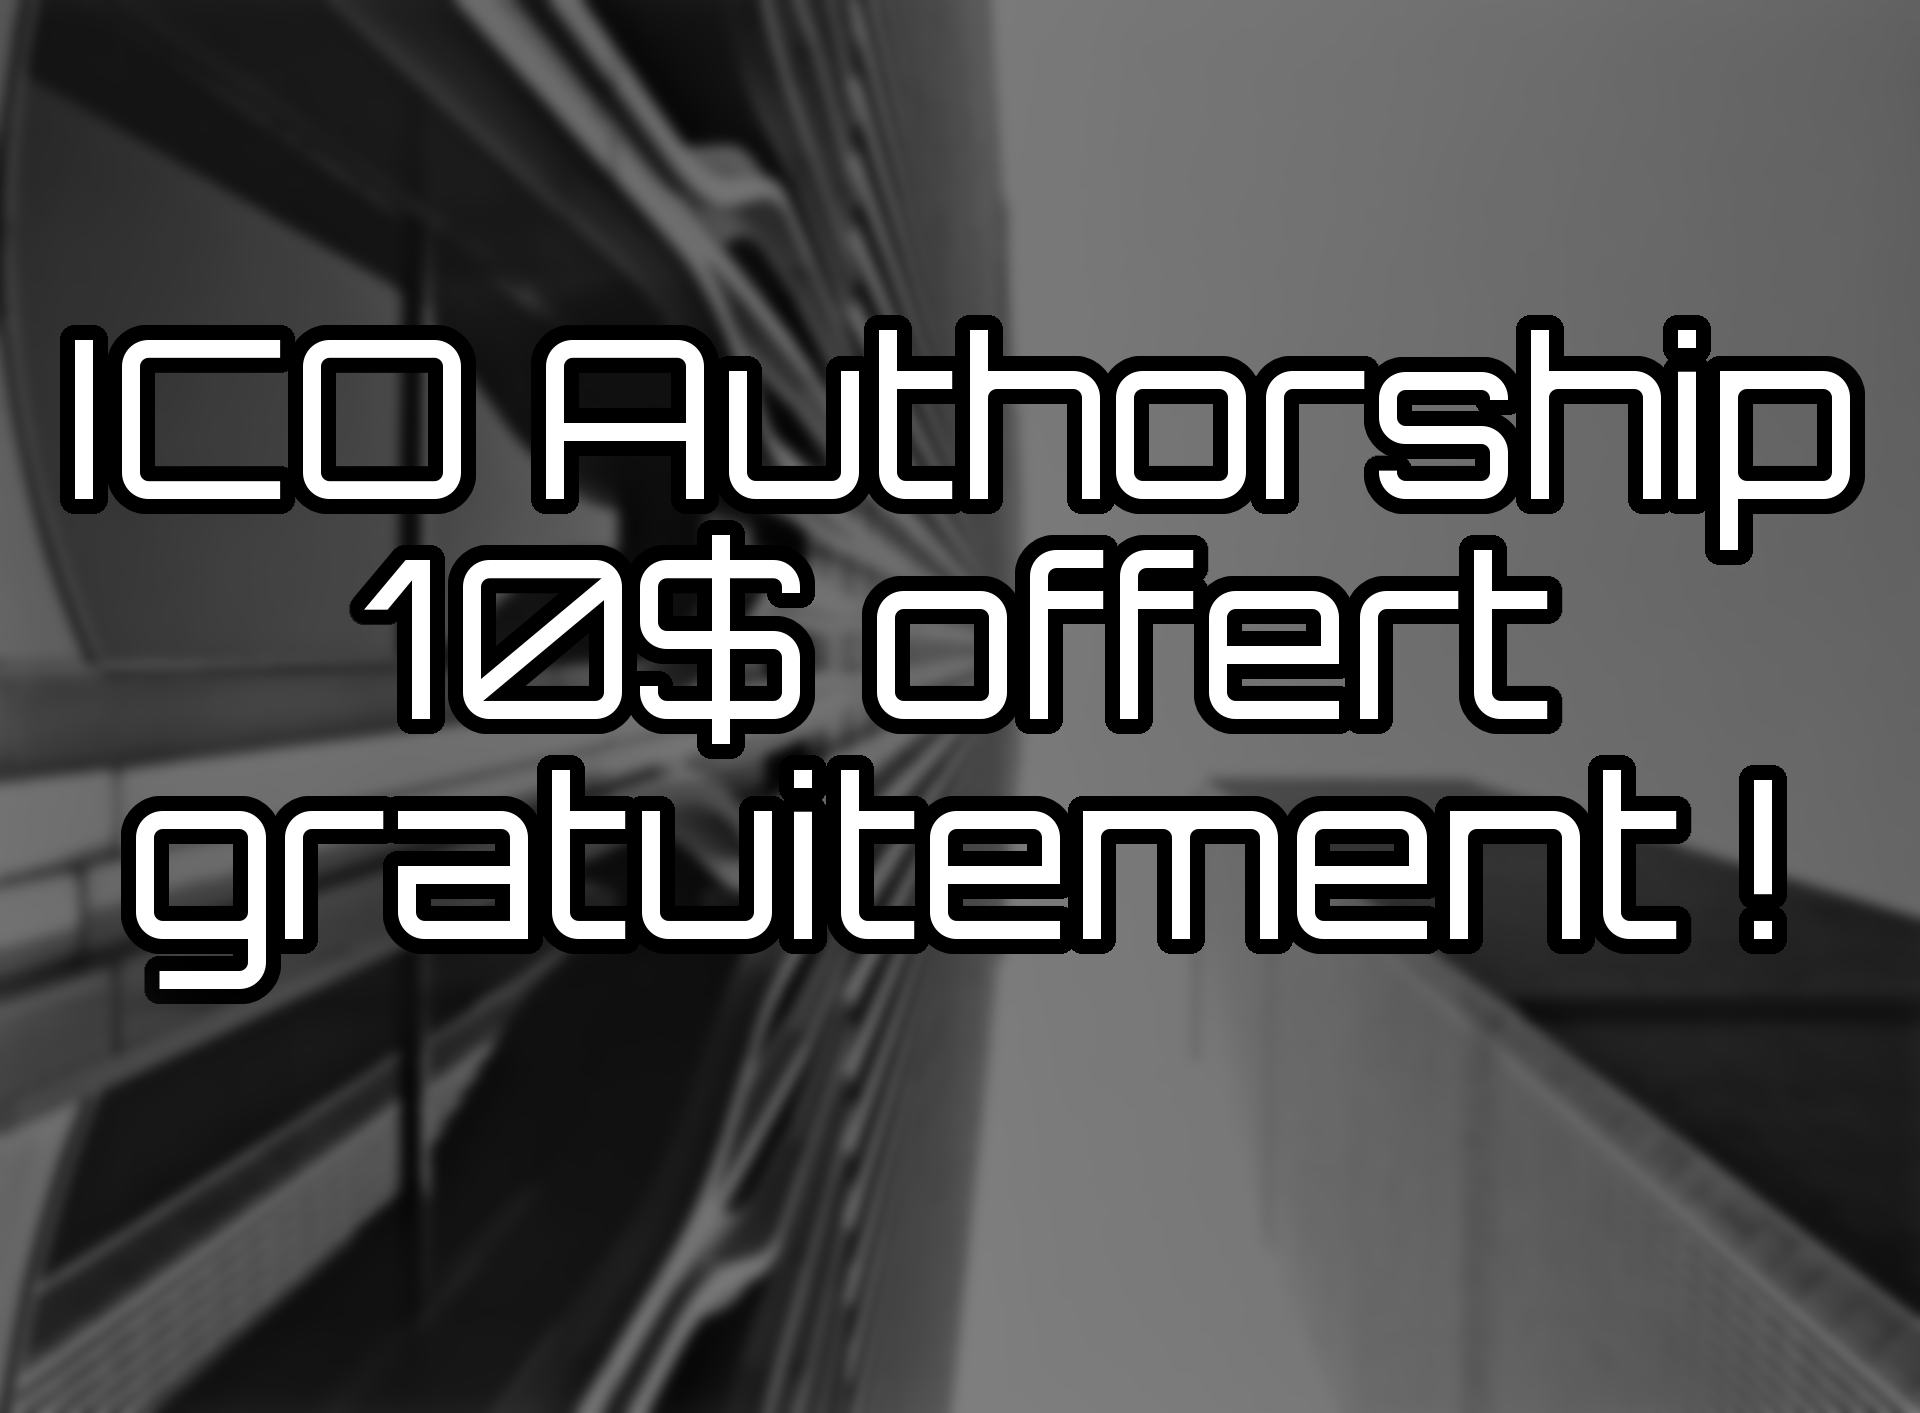 ICO authorship 10 $ gratuit